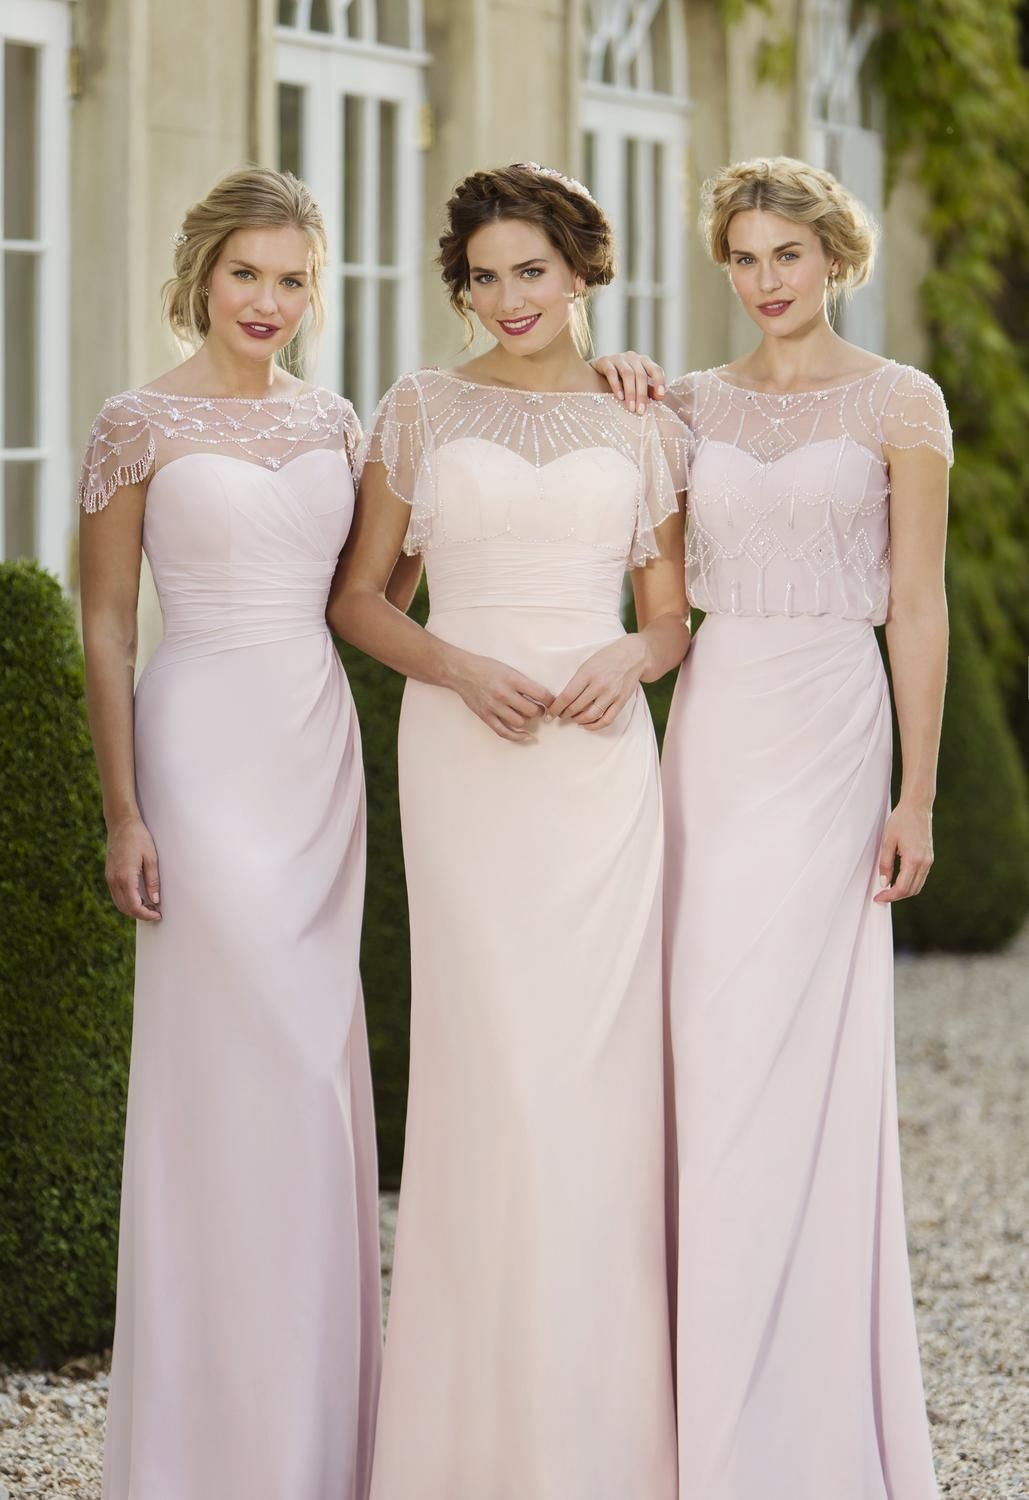 Luna Bridesmaids Dresses by Nicki Flynn | Kiki | True Bride ...